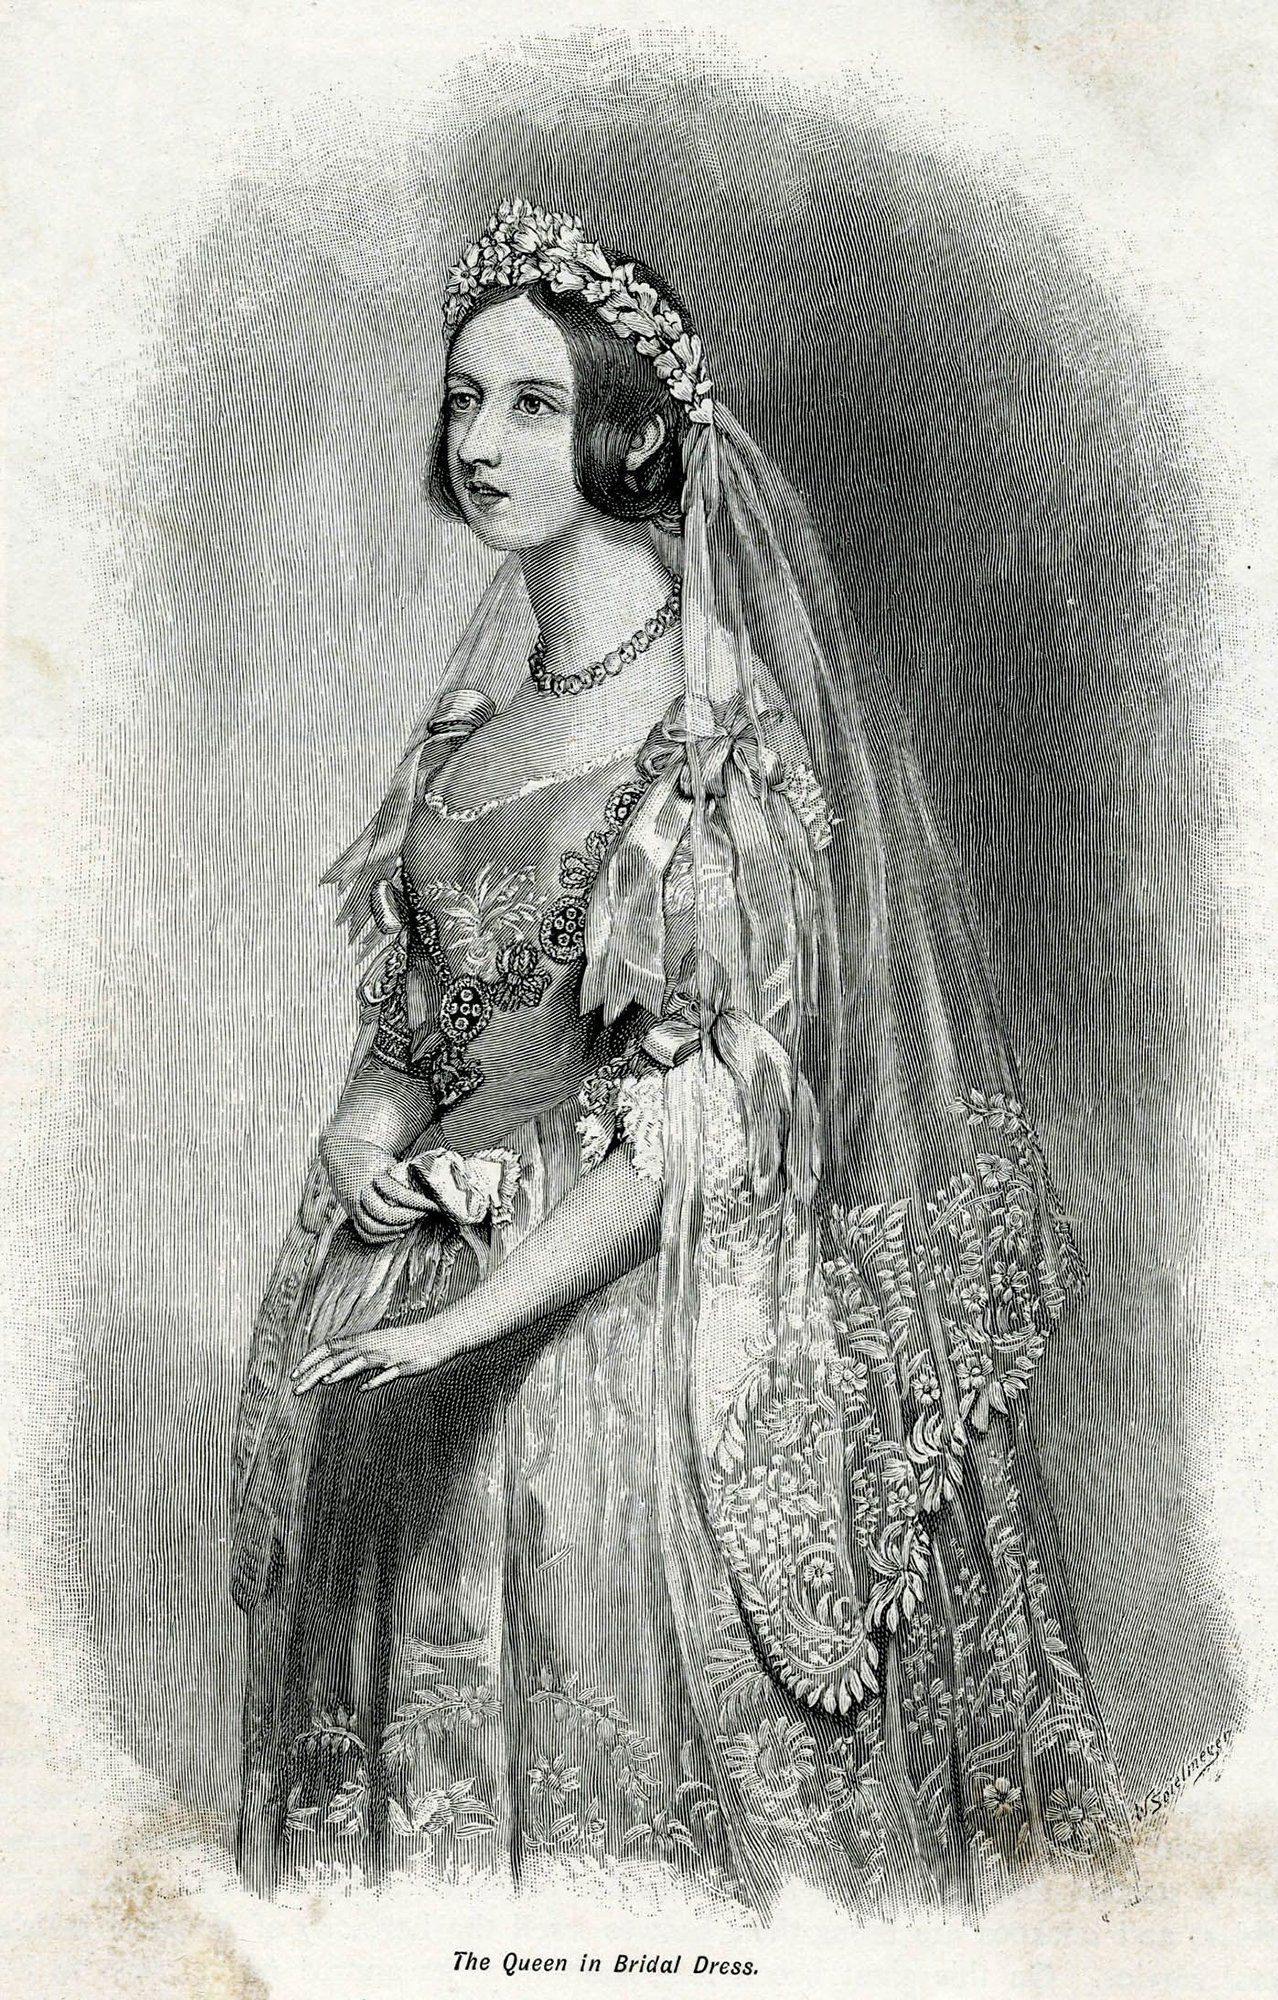 Queen Victoria Made White Wedding Dresses Popular Here S What Else You Should Know About Her Royal Wedding Queen Victoria Wedding Dress Queen Victoria Wedding Young Queen Victoria [ 2000 x 1278 Pixel ]